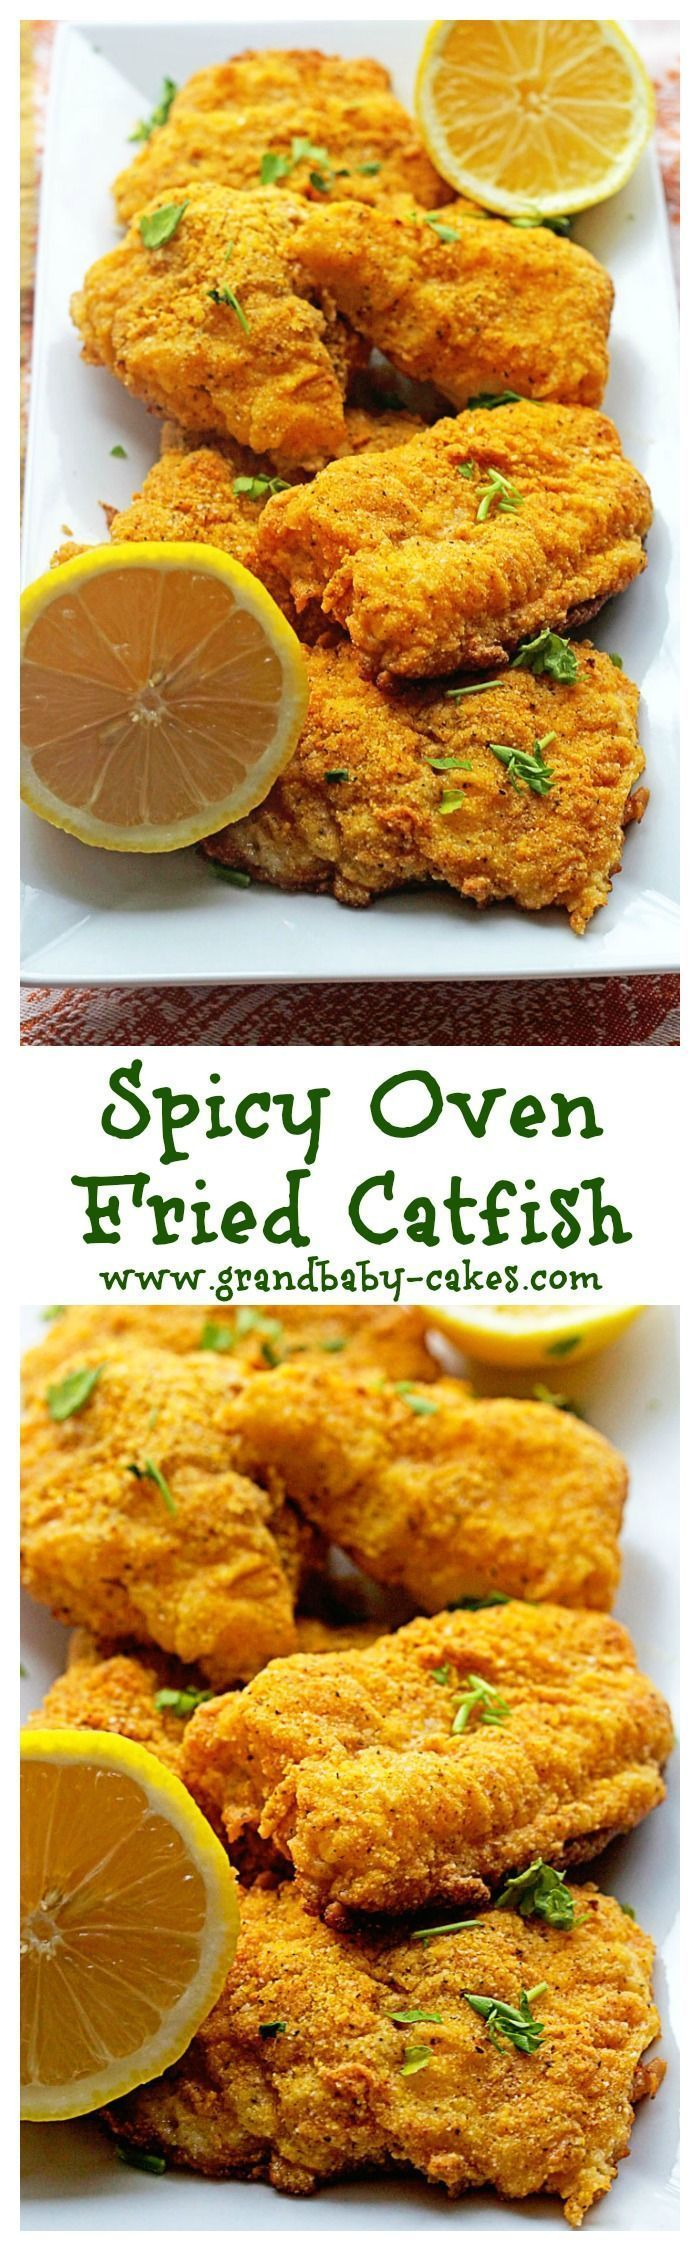 Perfectly Flavorful Oven Fried Catfish With A Spicy Edge Get That Fantastic Southern Flavor Without The Extra Fat Of Frying